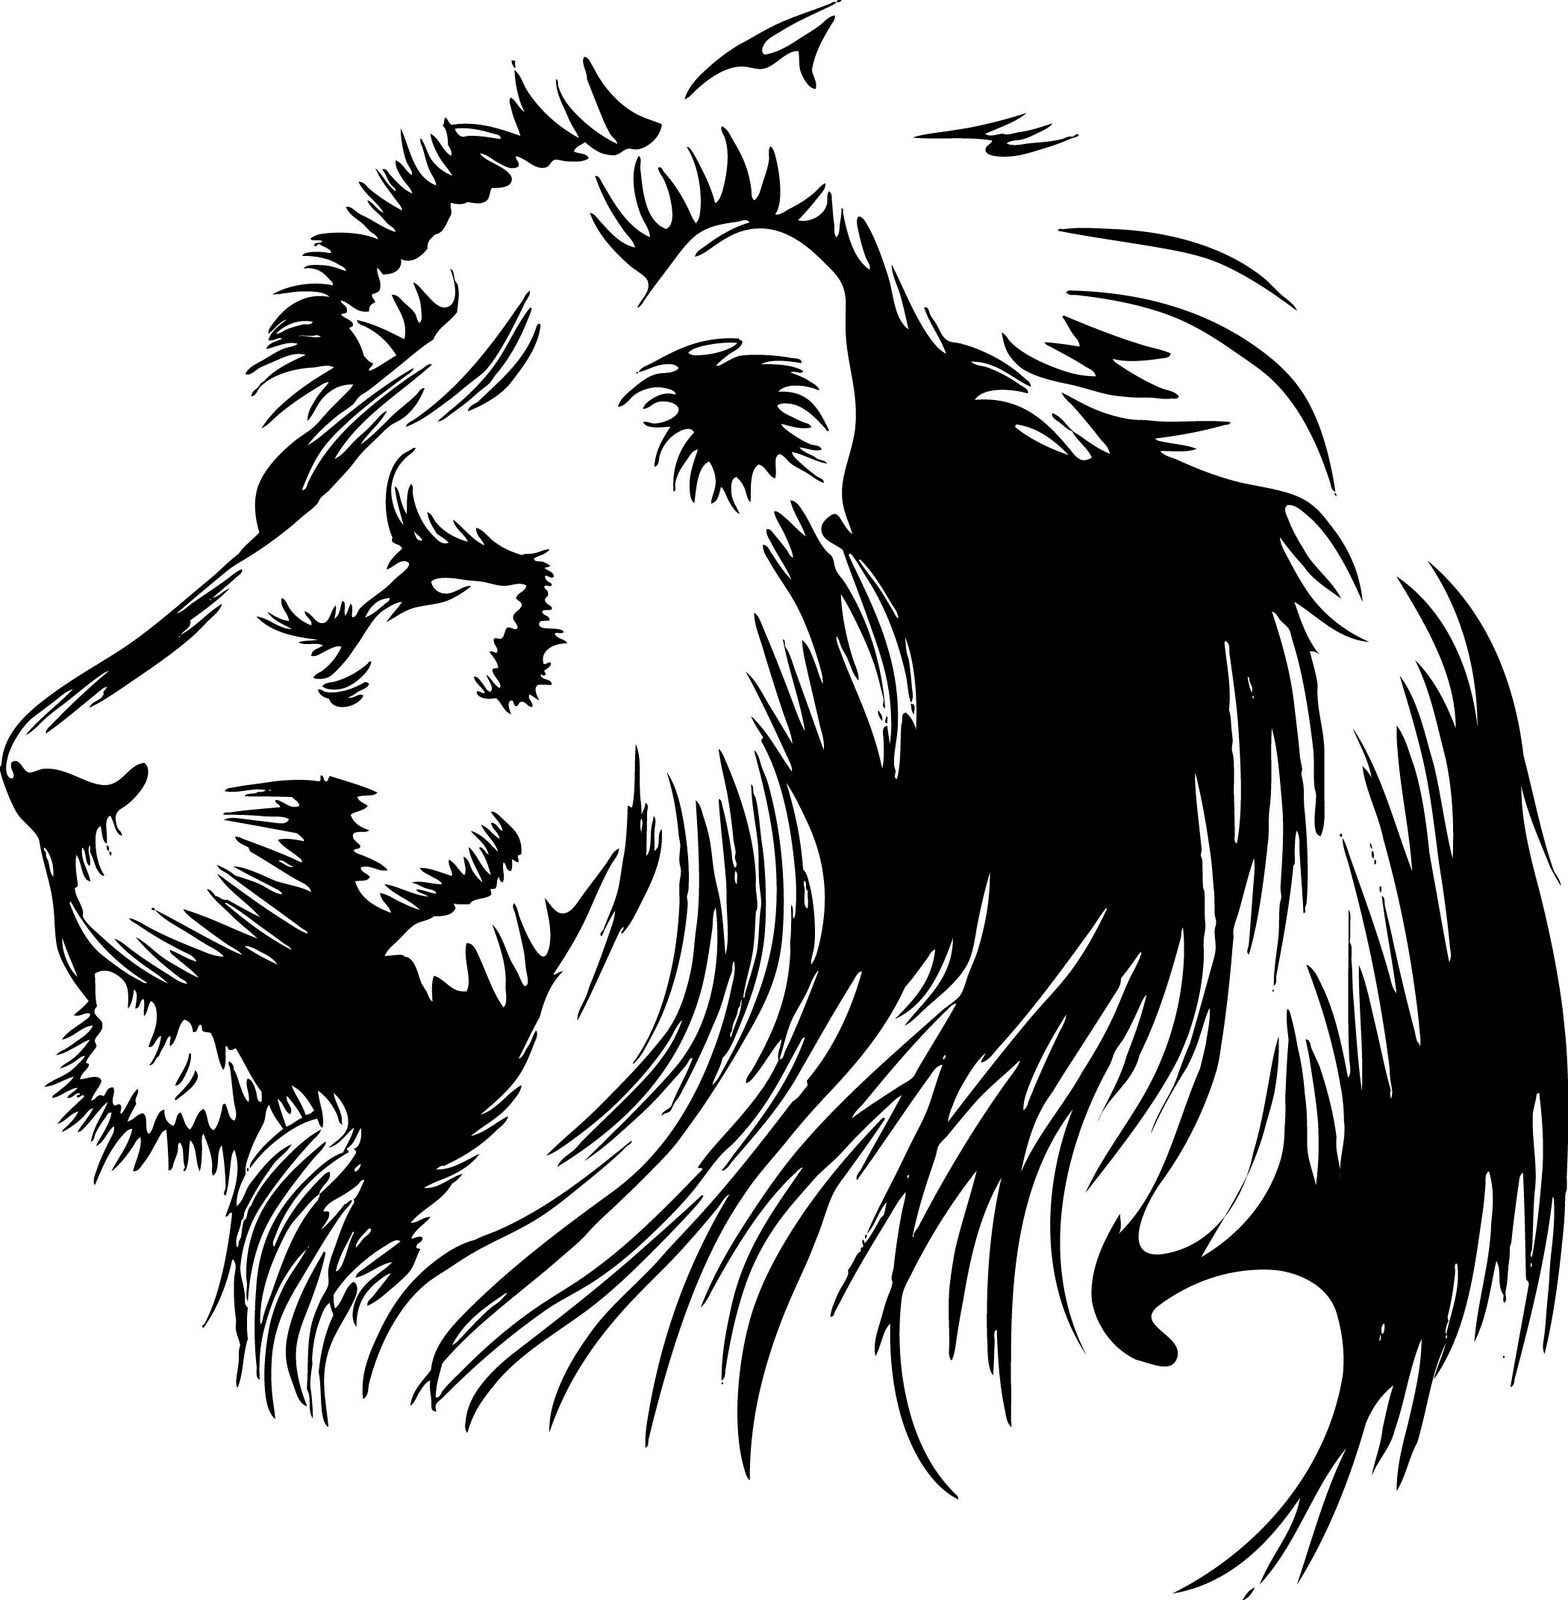 ... art: Lion Head Vectorfree download, free download vector, CDR, EPS, AI